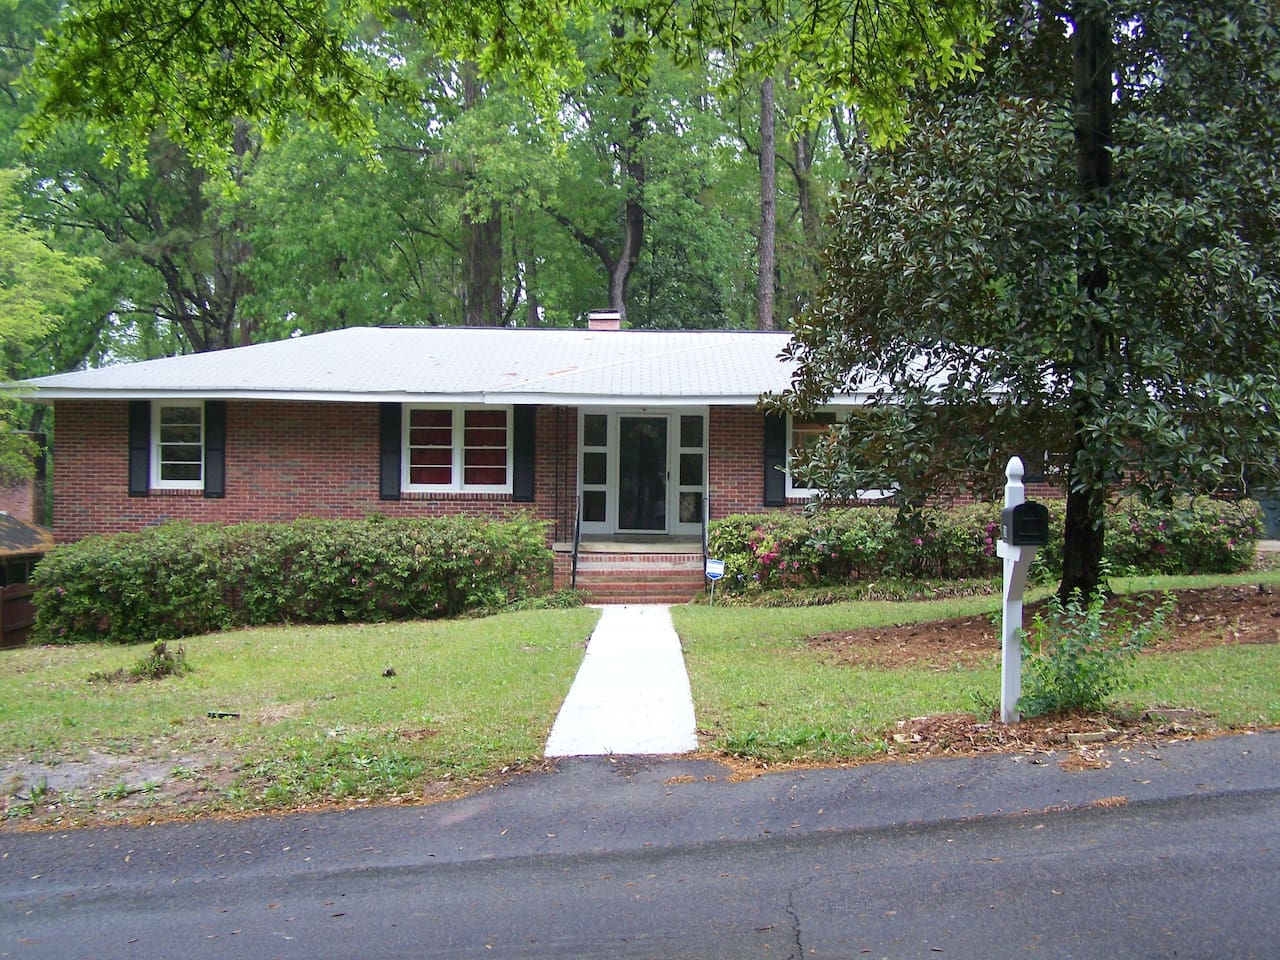 1800 sq ft., ranch style, brick home.